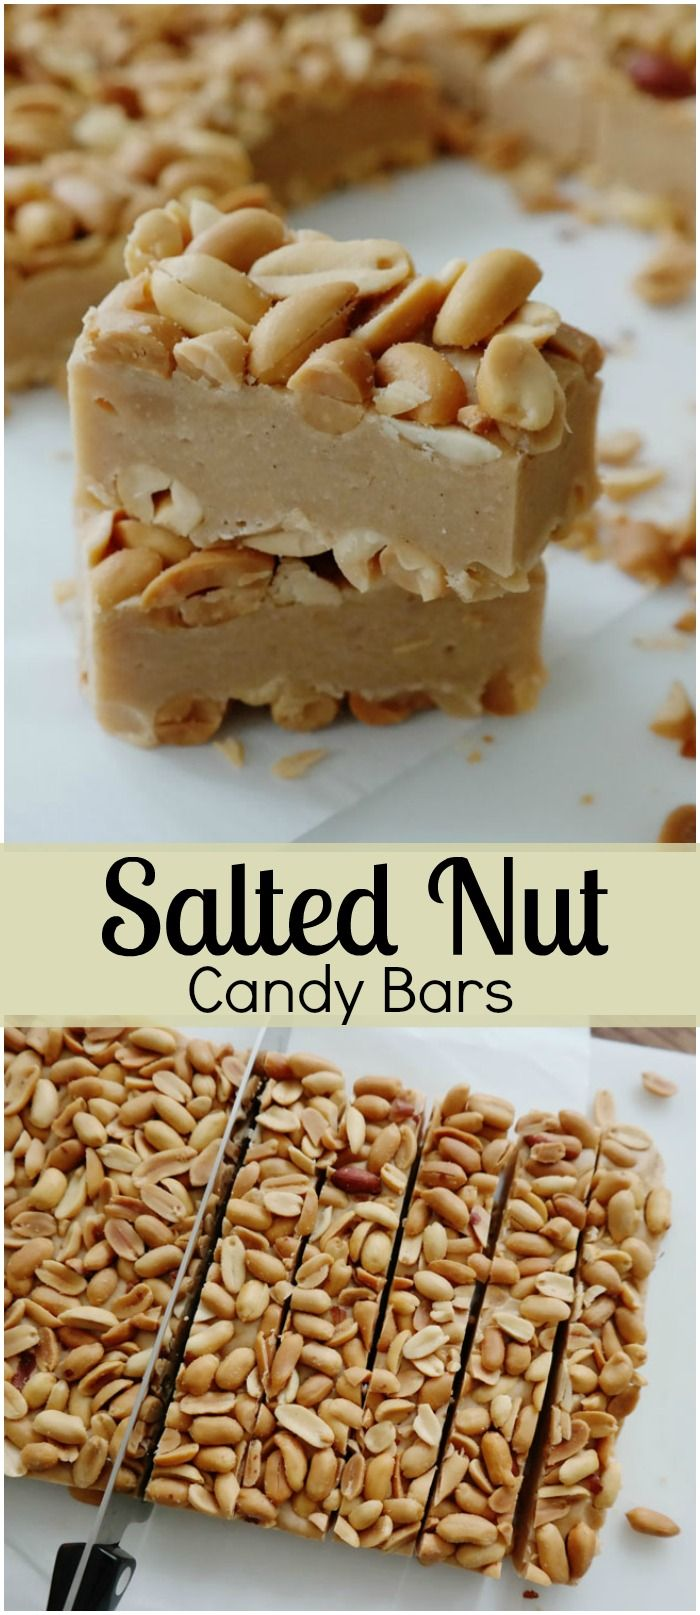 Salted Nut Candy Bars - Chocolate Chocolate and More!